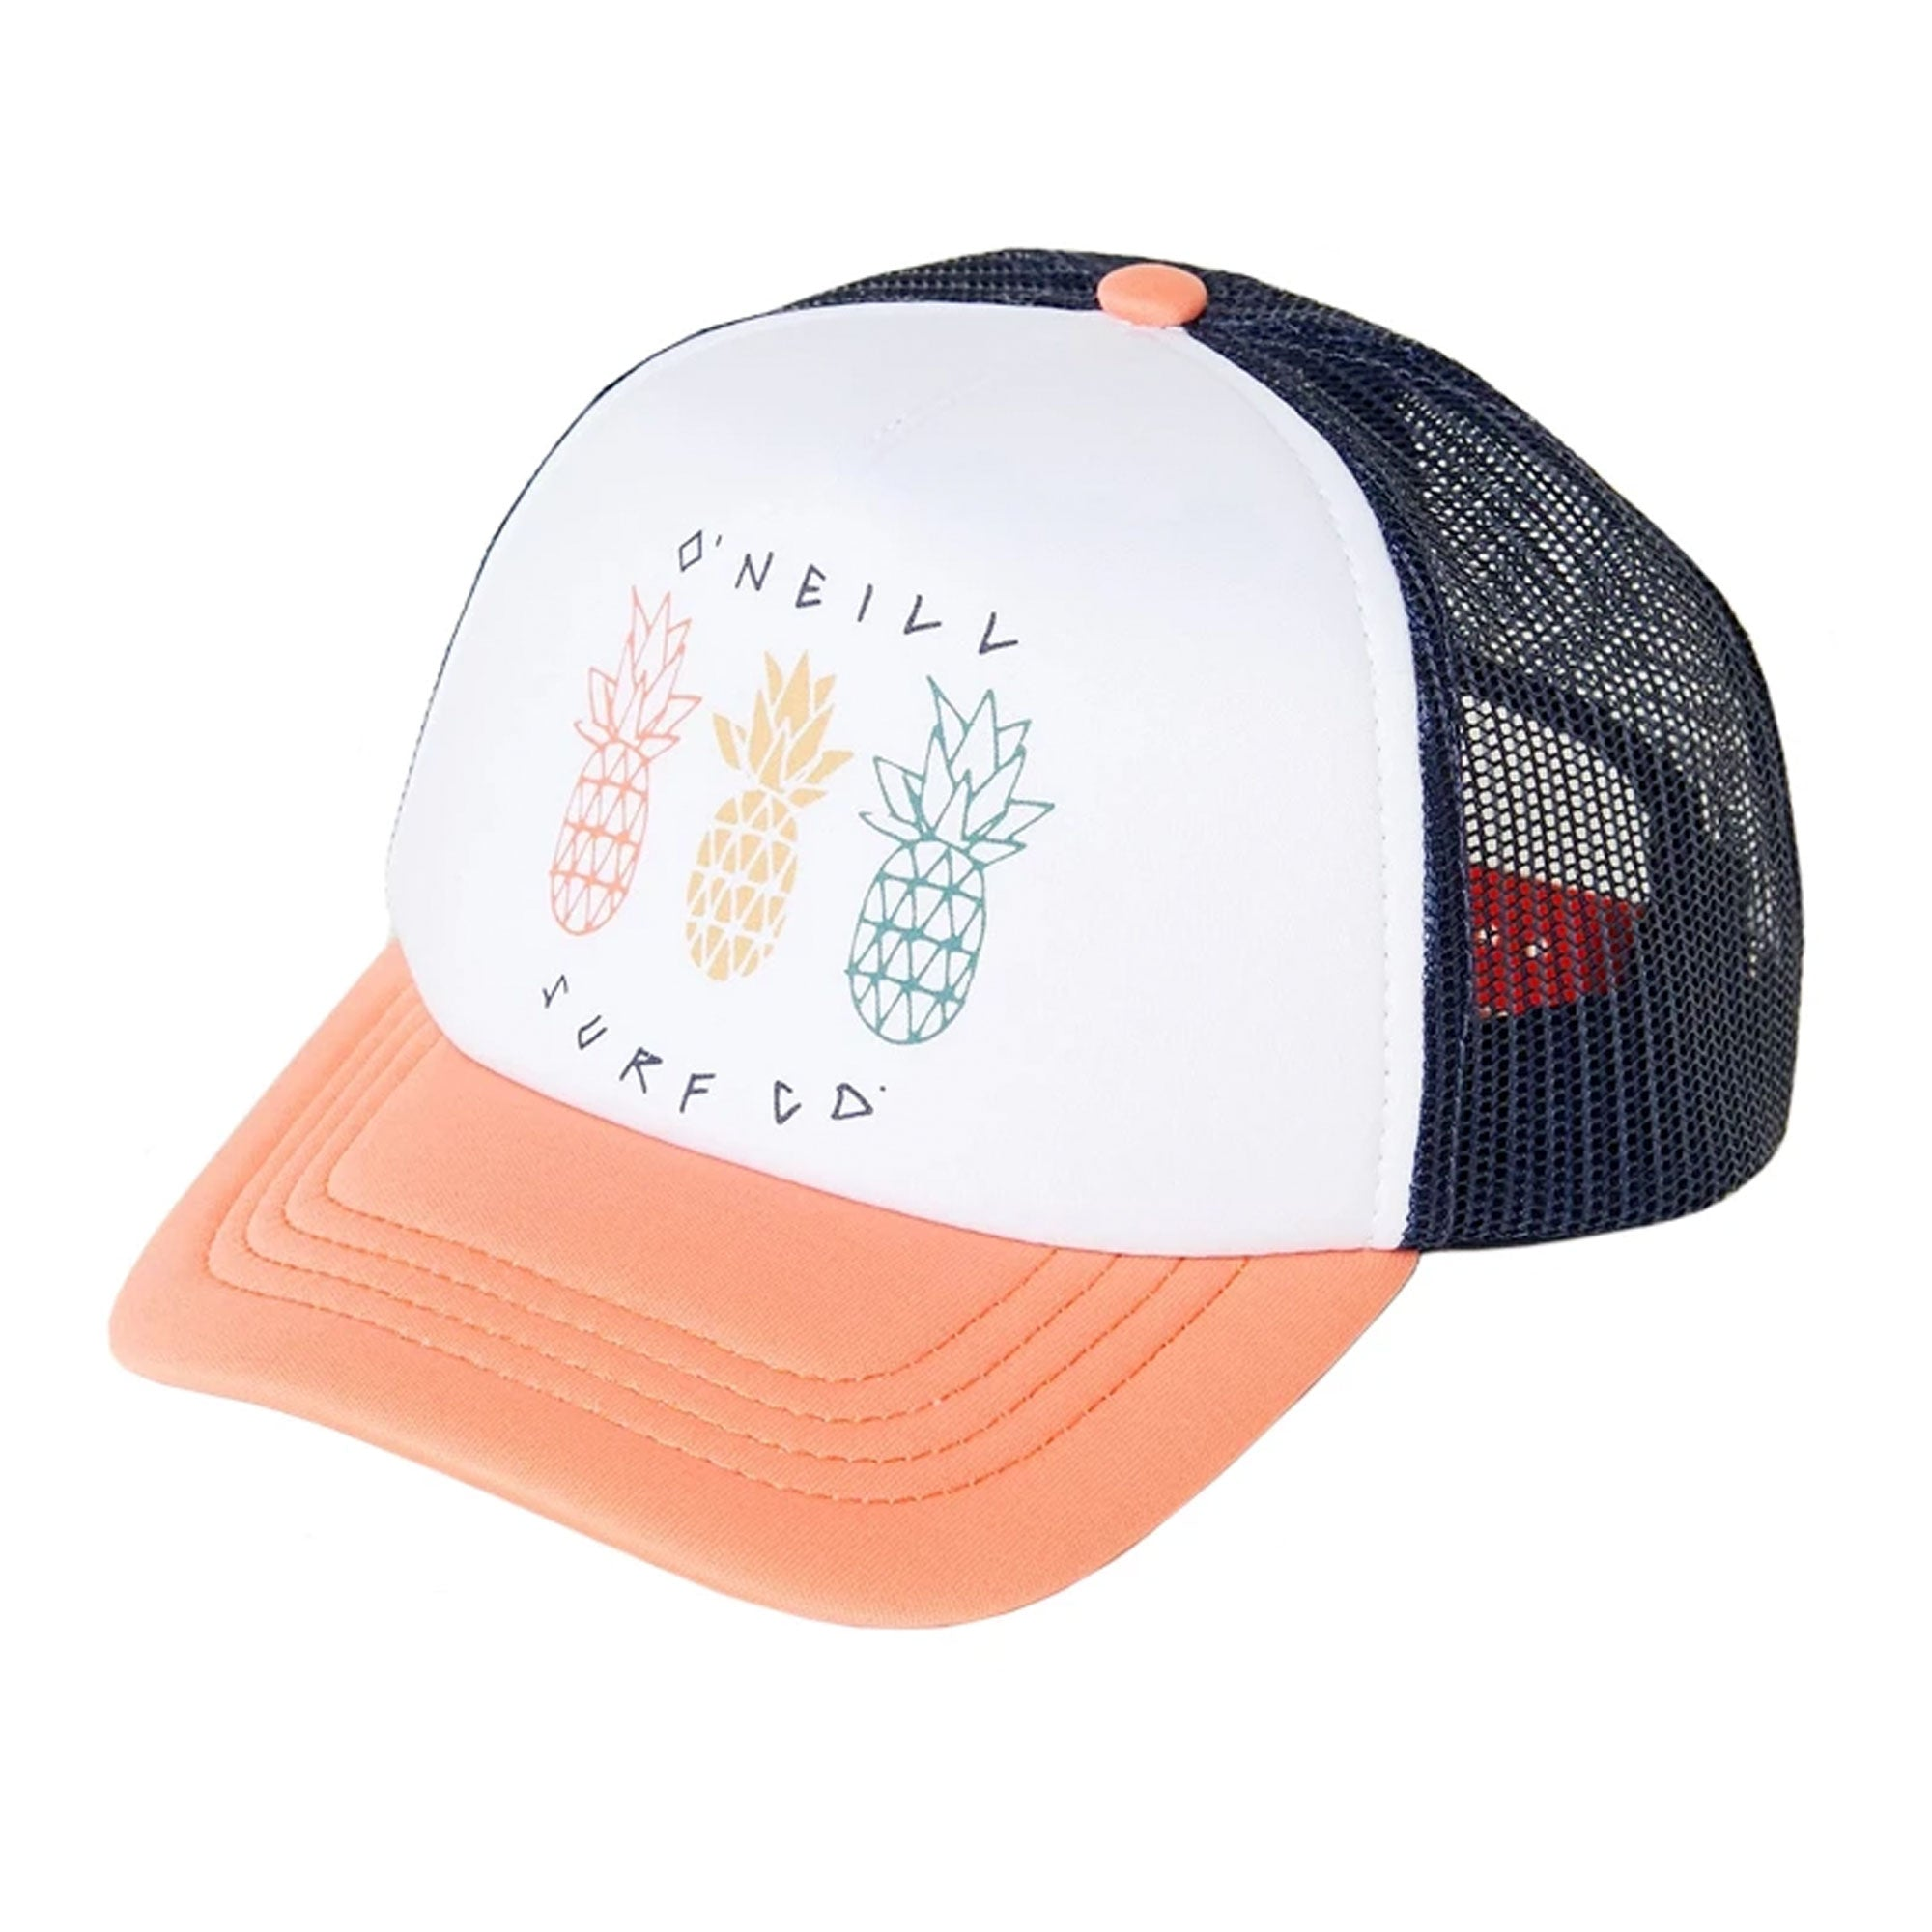 O'Neill Girls Road Trip Hat